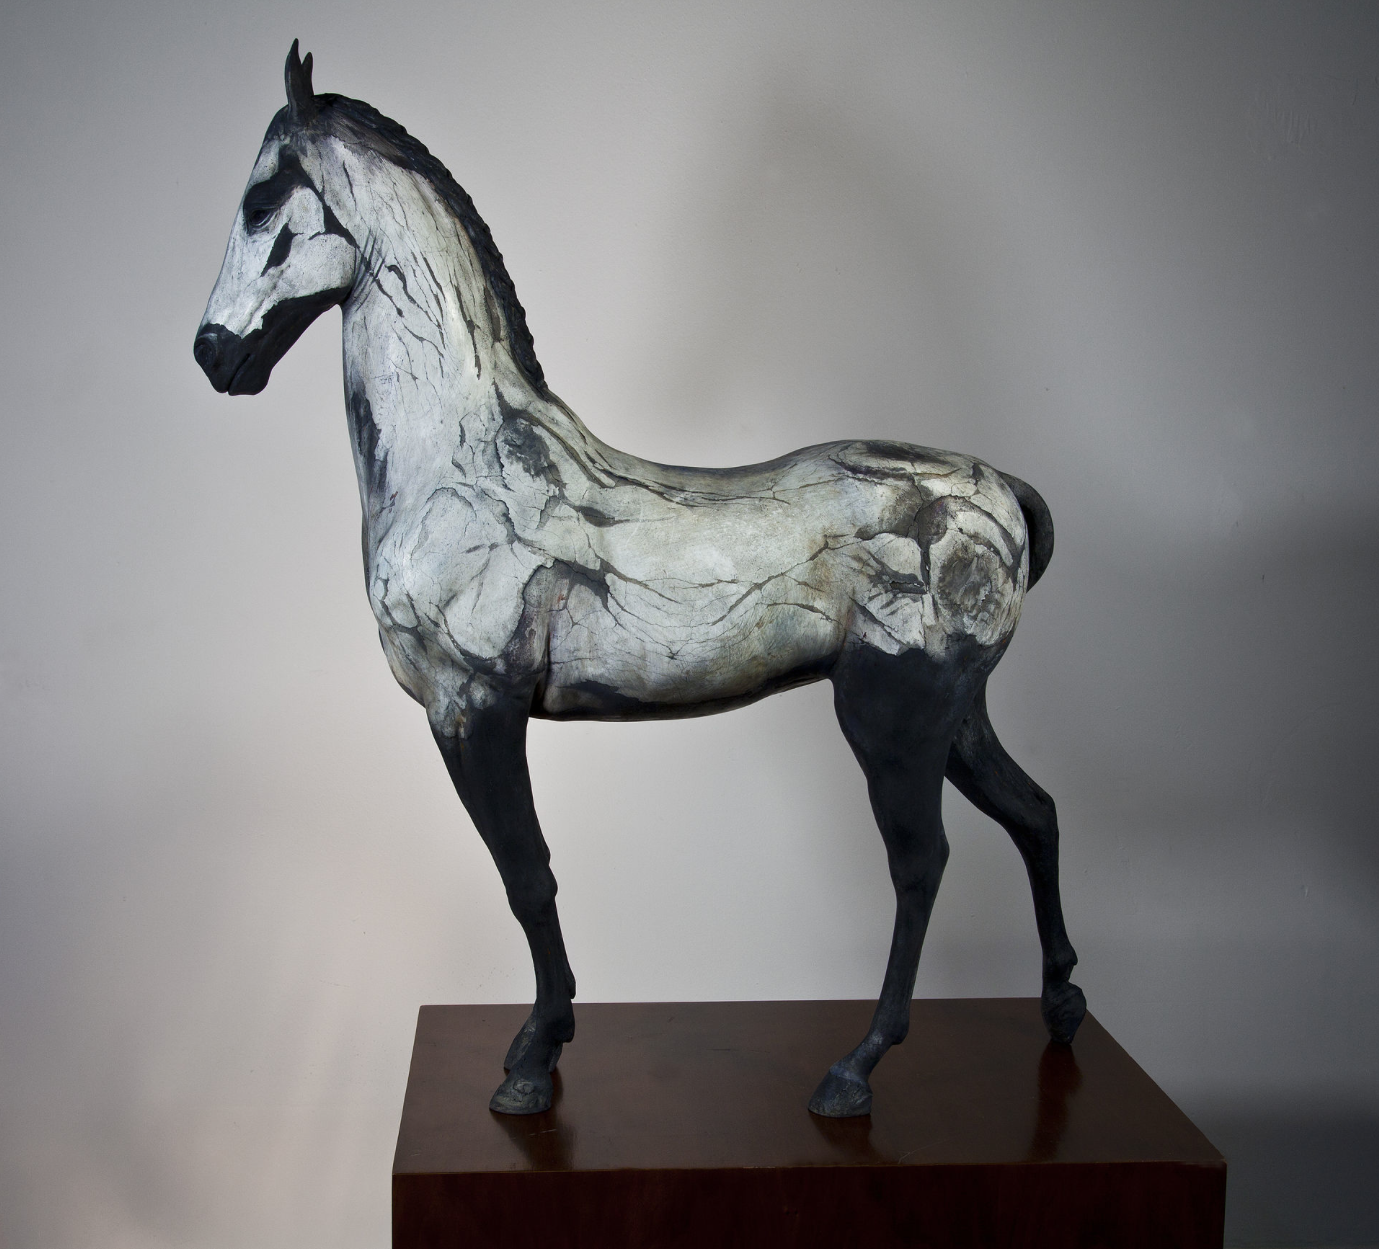 Neil Clifford – Spirit Within – Sculpture – Plaster on Stainless Steel